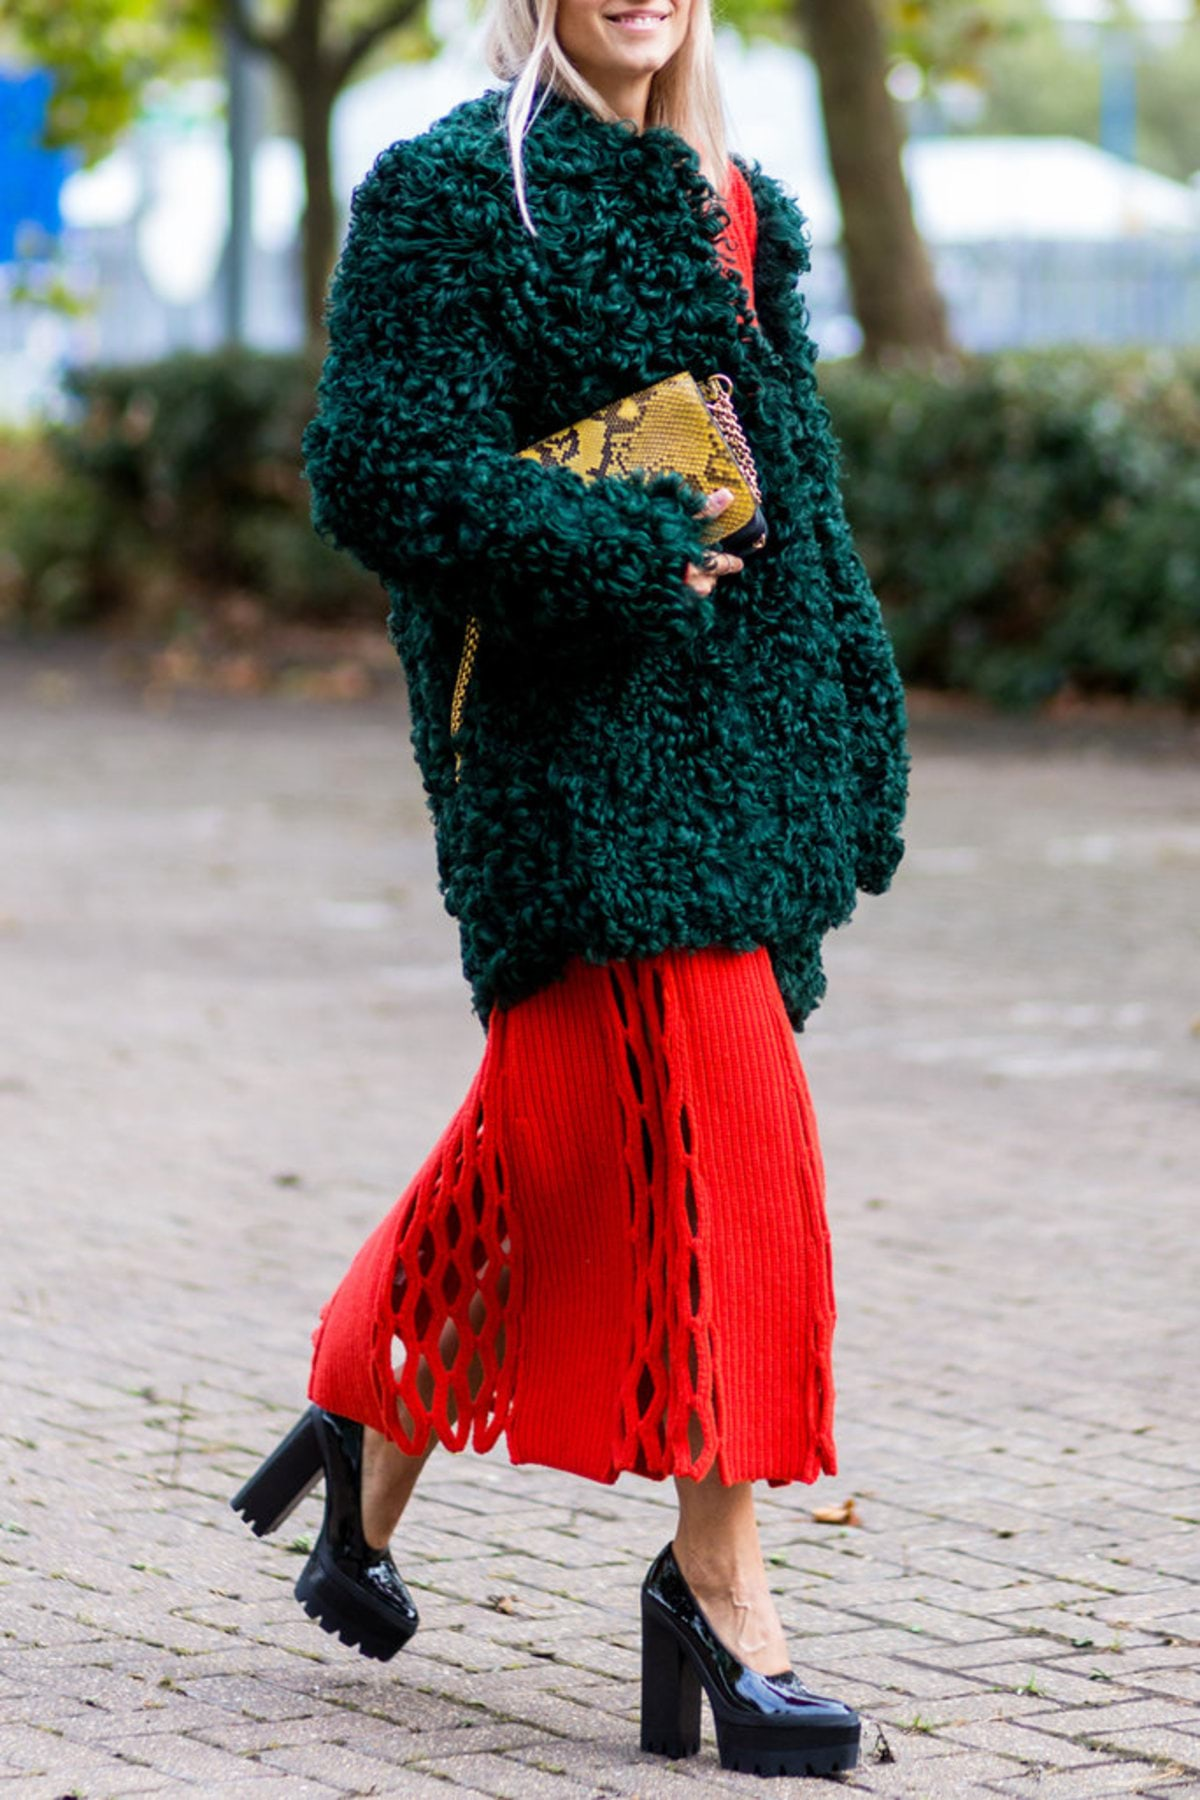 120816-red-green-street-style-11